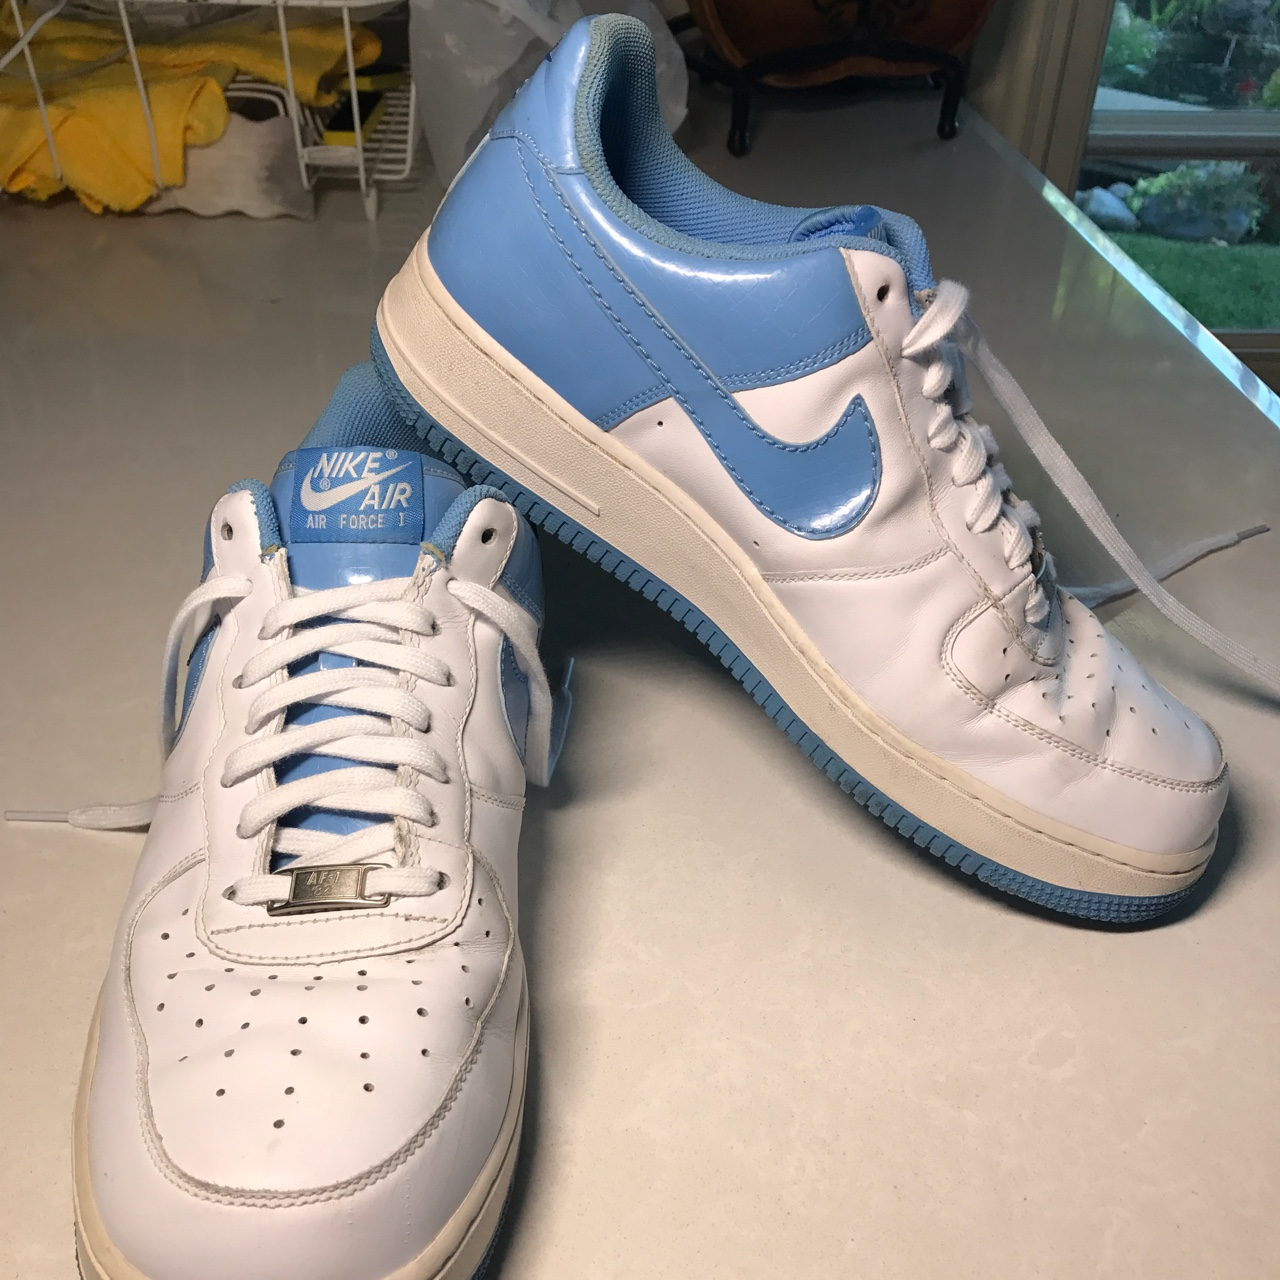 RARE Depop 1 2007 TributeRare 1982 Force Nike Low Air DH2YeE9bIW